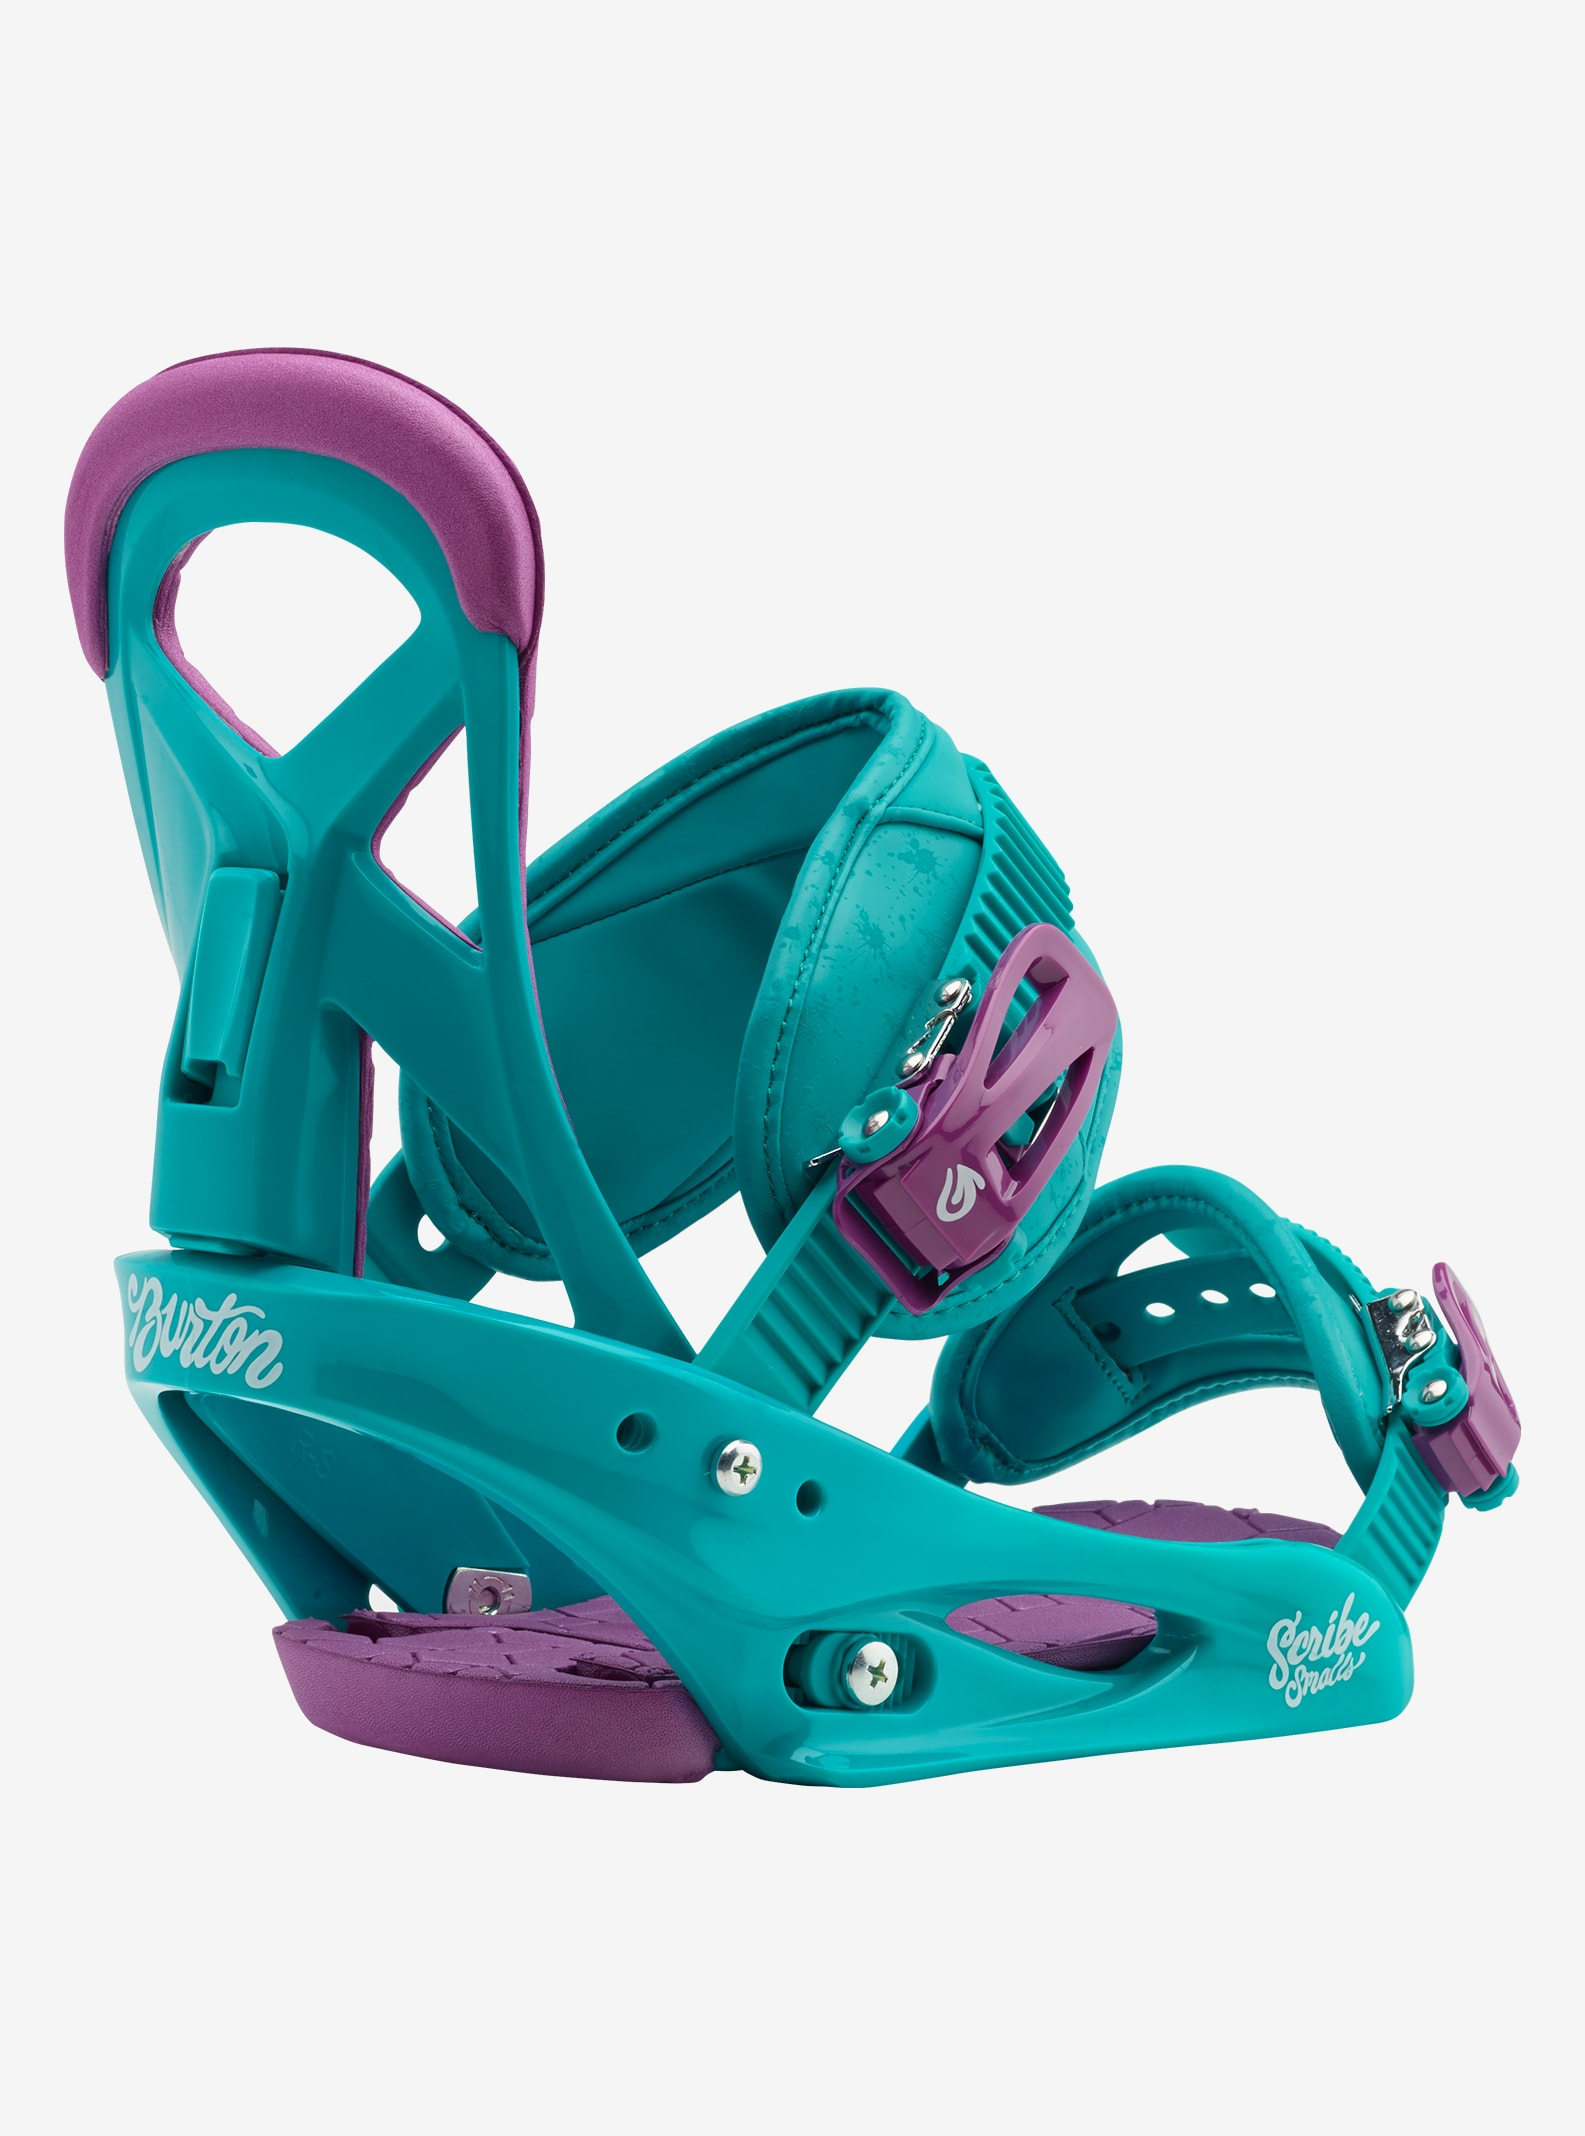 Girls' Burton Scribe Smalls Snowboard Binding shown in Frostberry